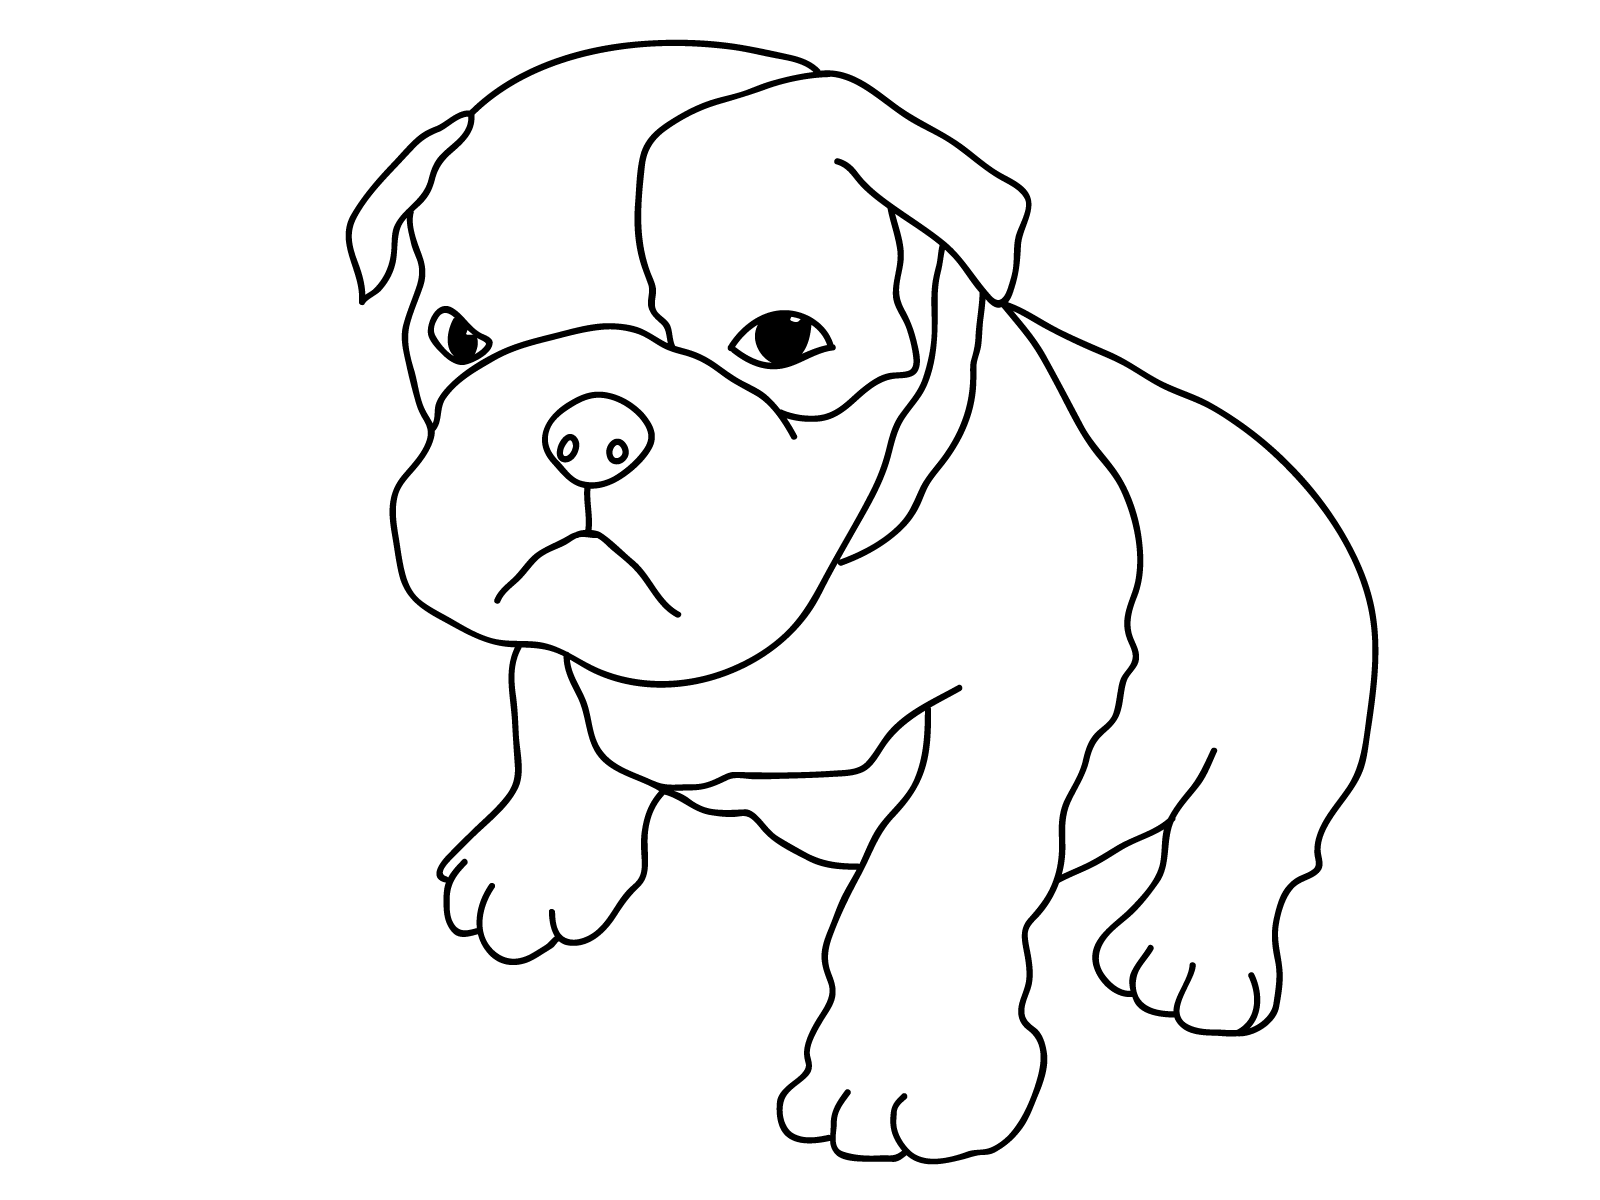 free dog coloring sheets kids coloring pages dog coloring pages free dog sheets coloring